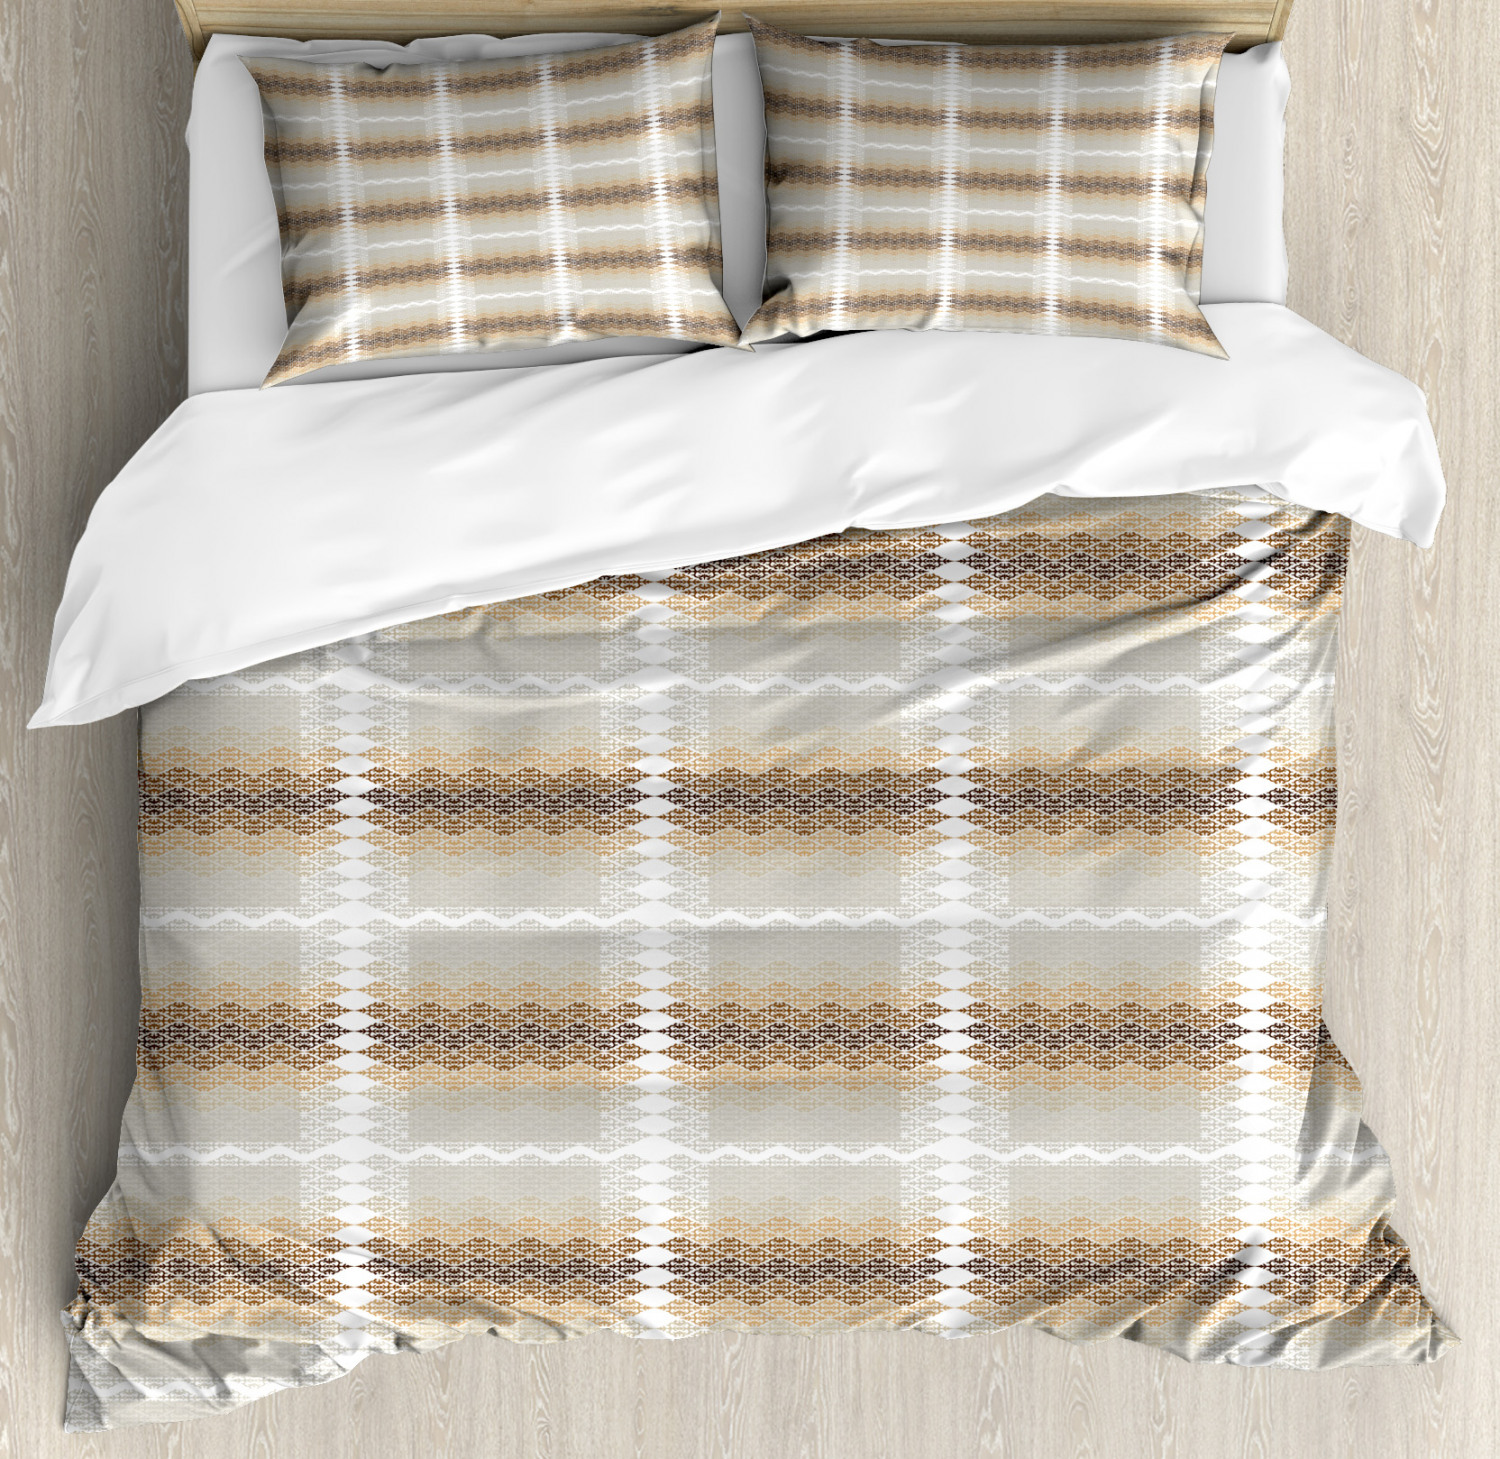 Abstract Duvet Cover Set with Pillow Shams African Arabic Culture Print